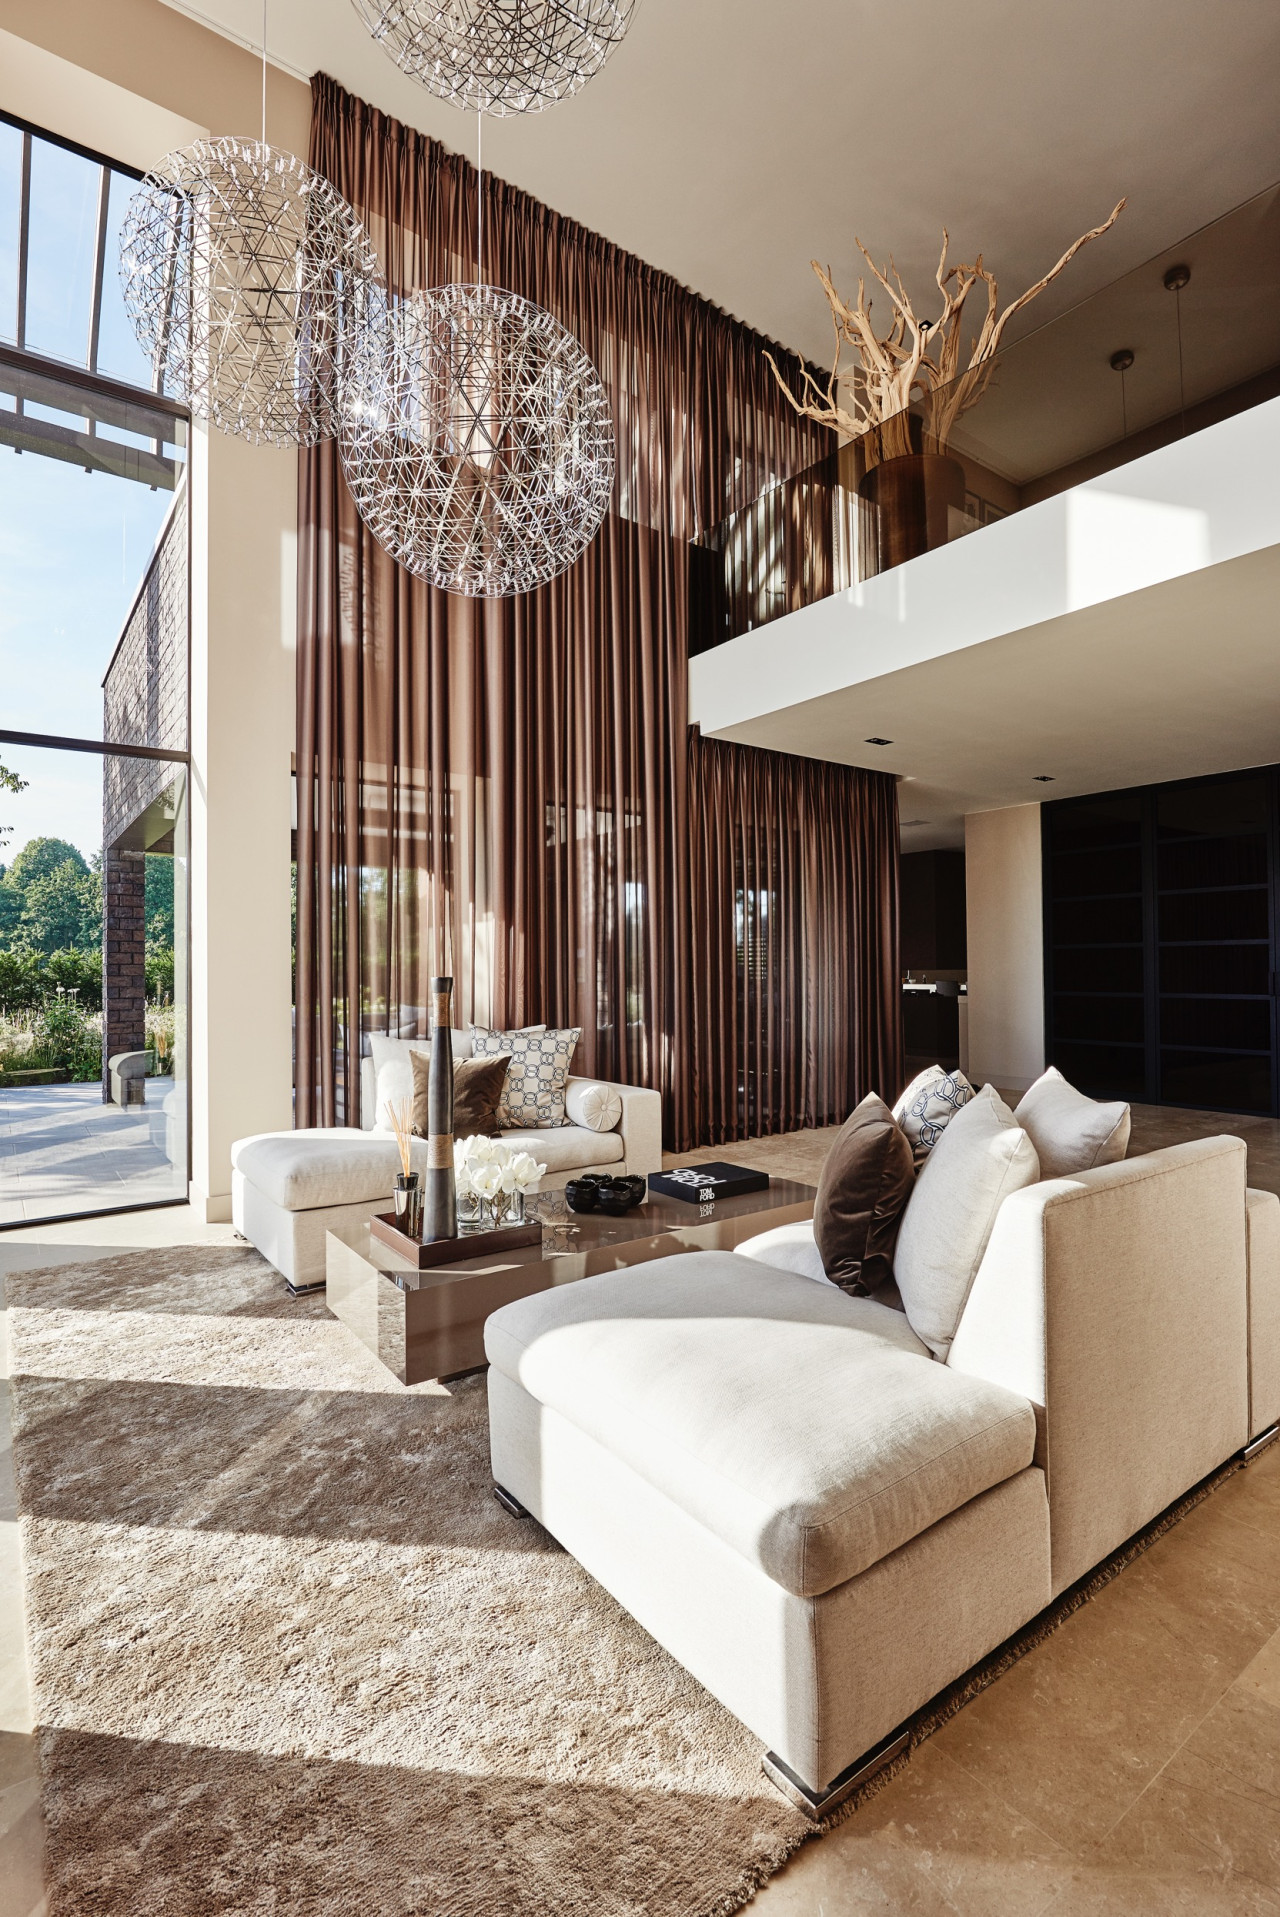 Countryside villa projects eric kuster metropolitan luxury - Luxury interior ...